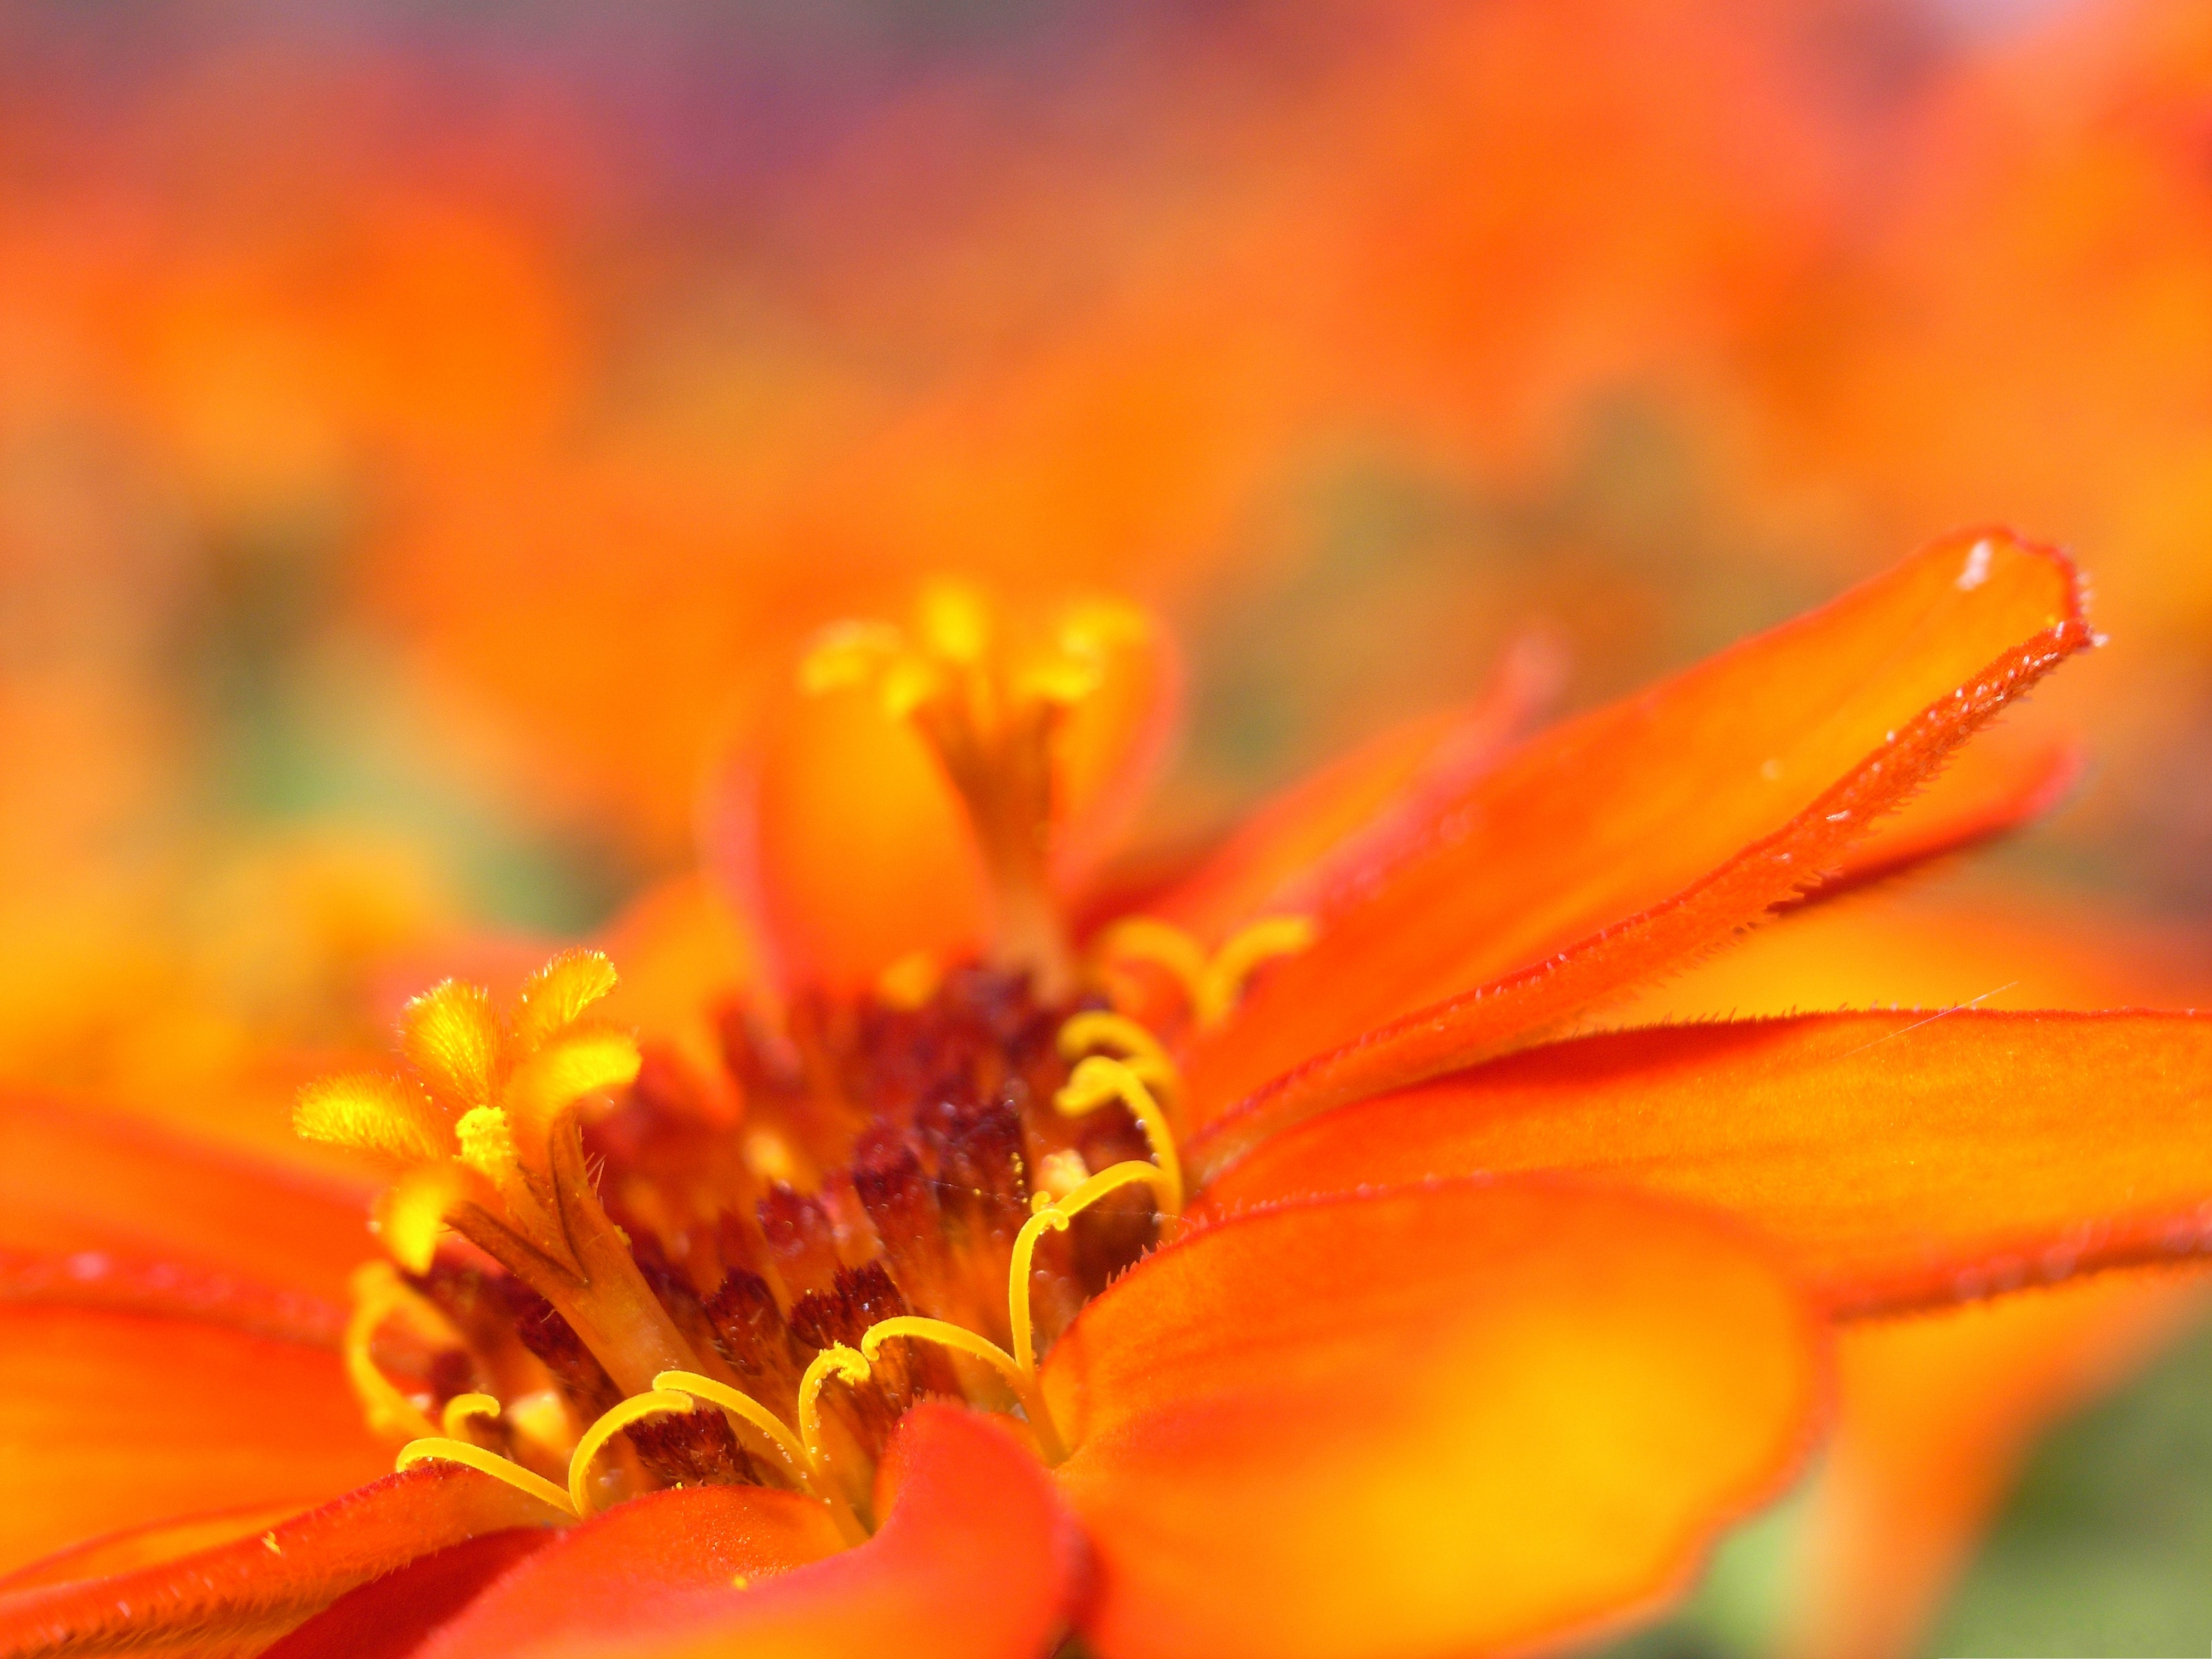 click to free download the wallpaper--Orange Flower Picture, Blooming Flower Under Macro Focus, Amazing Scene 3200X2400 free wallpaper download